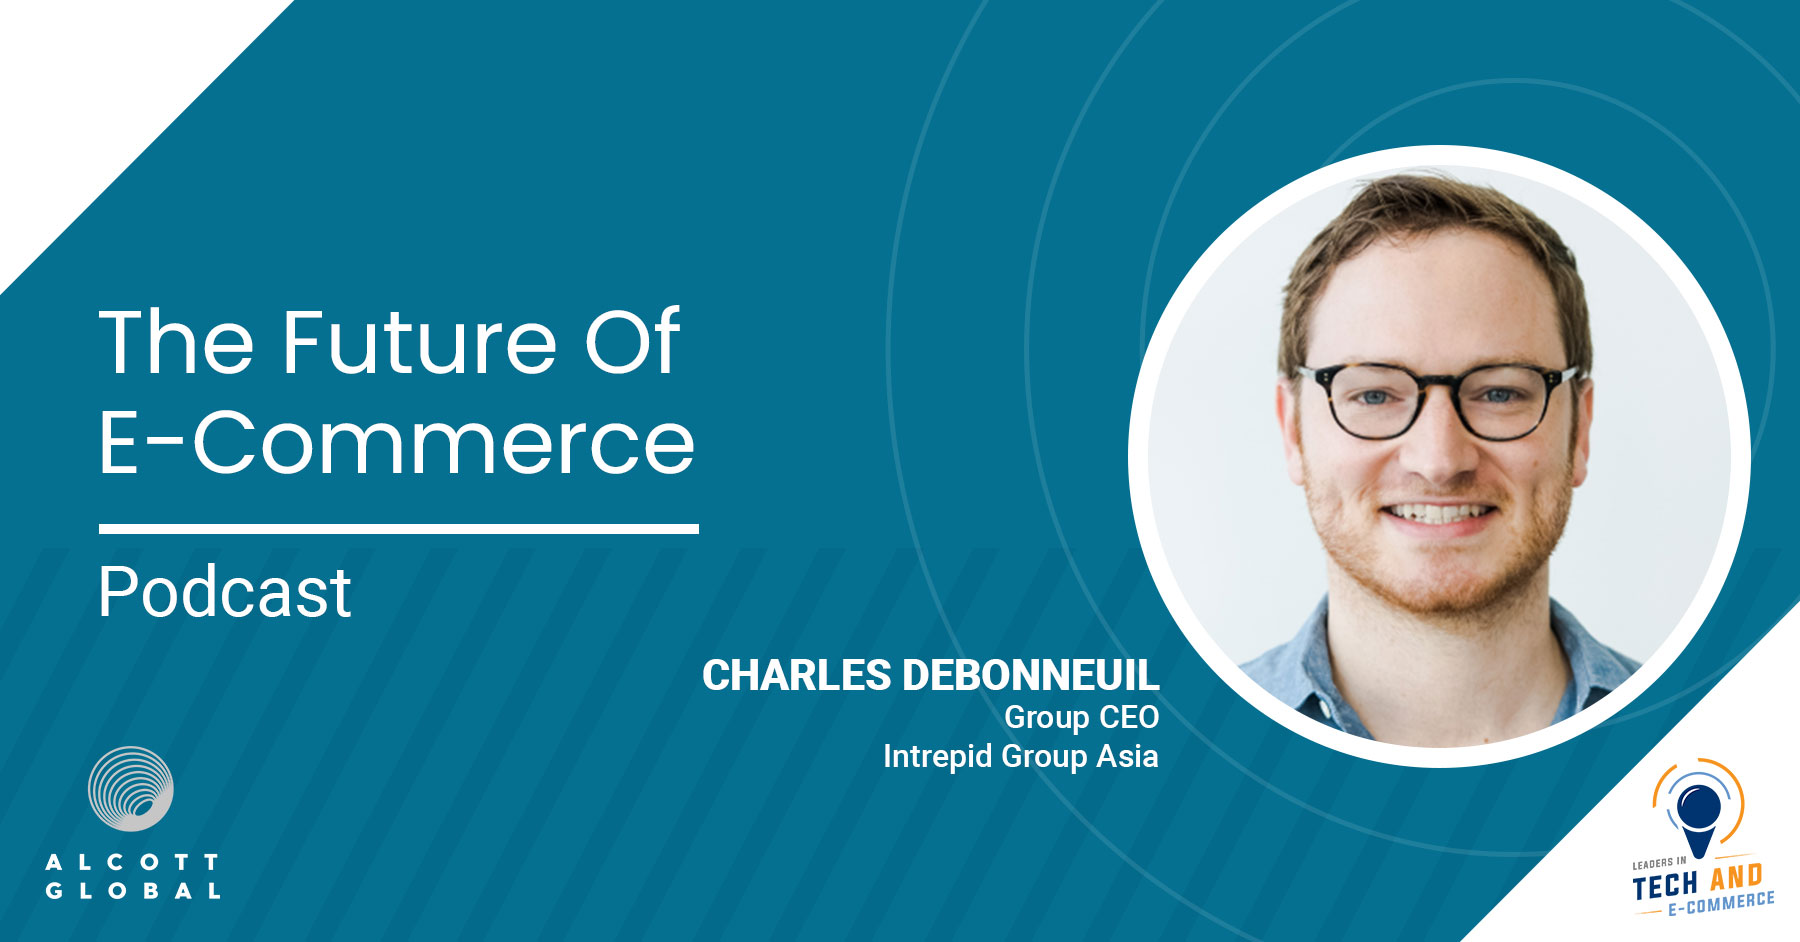 The Future of E-commerce with Charles Debonneuil Group CEO of Intrepid Group Asia Featured Image